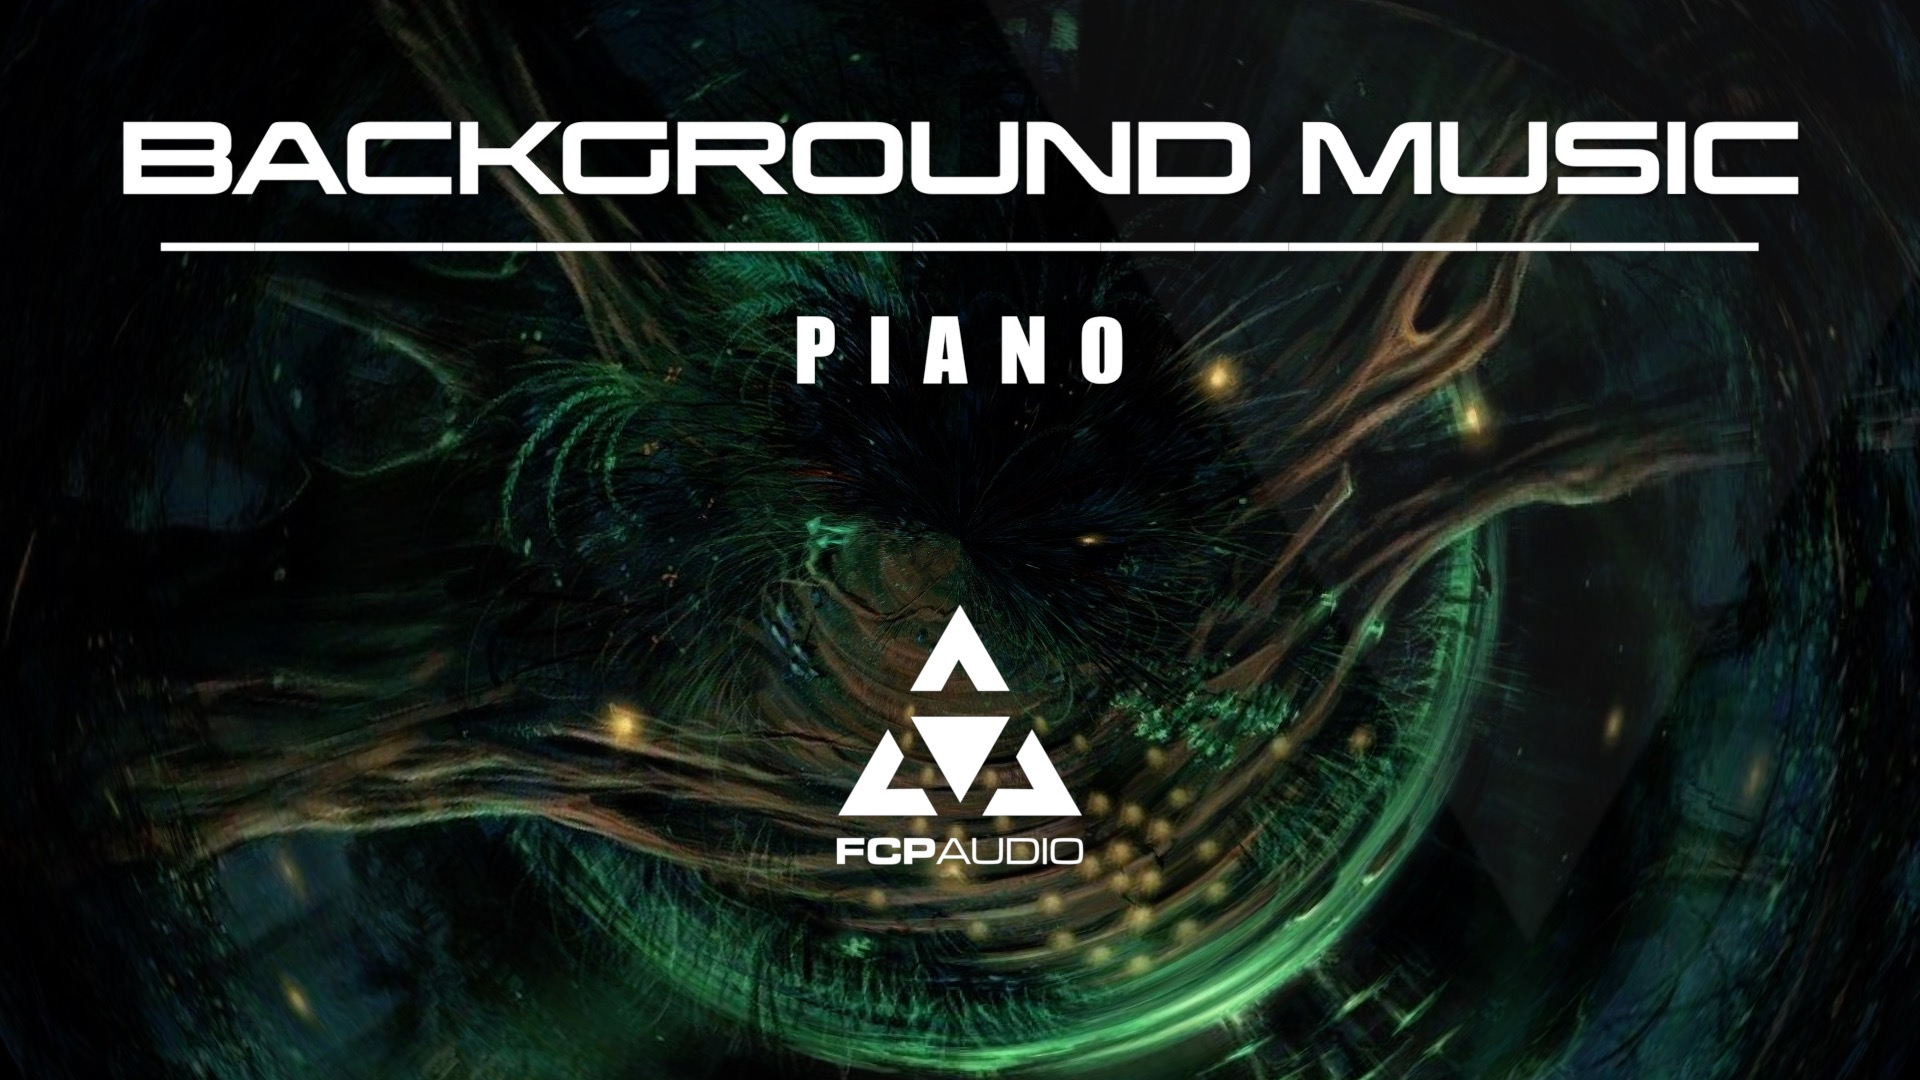 Royalty Free Piano Music   Final Cut Pro   Background Music Piano by FCP Audio